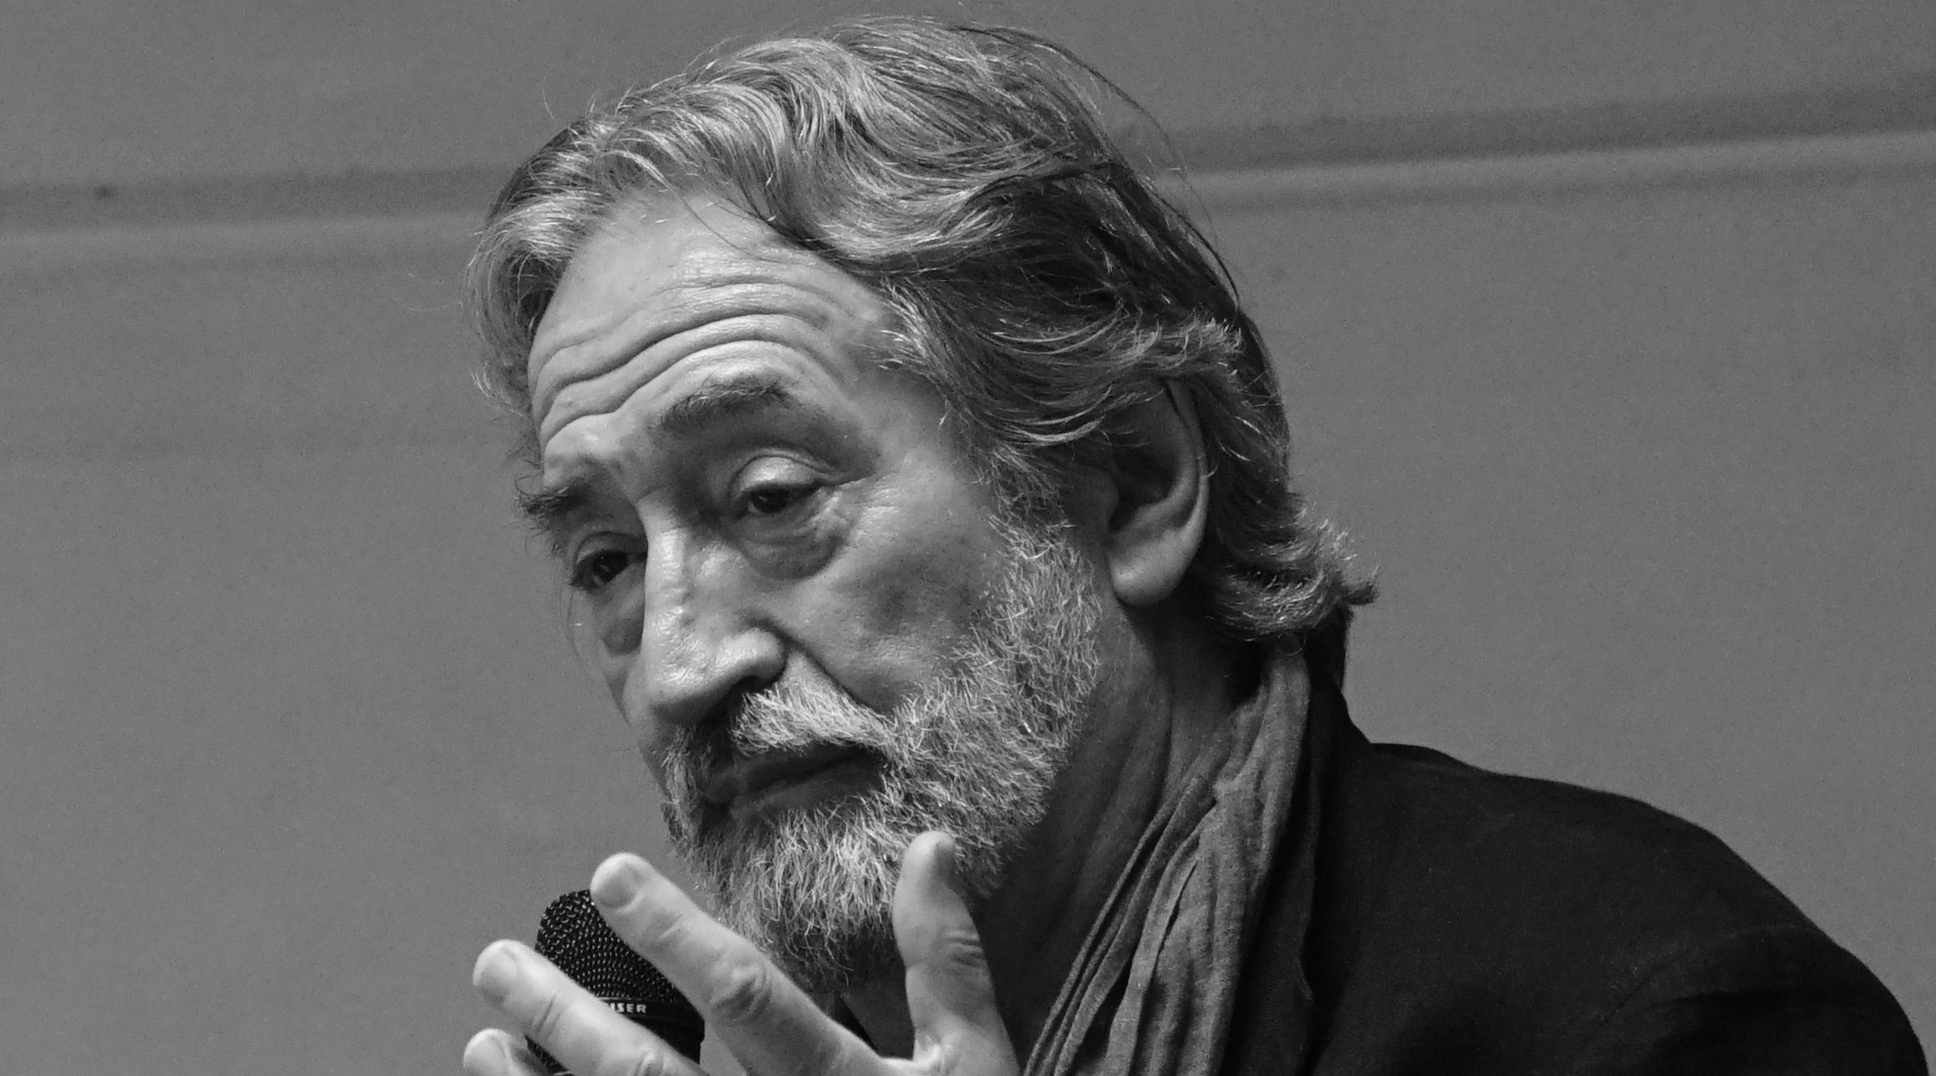 Savall in 2016